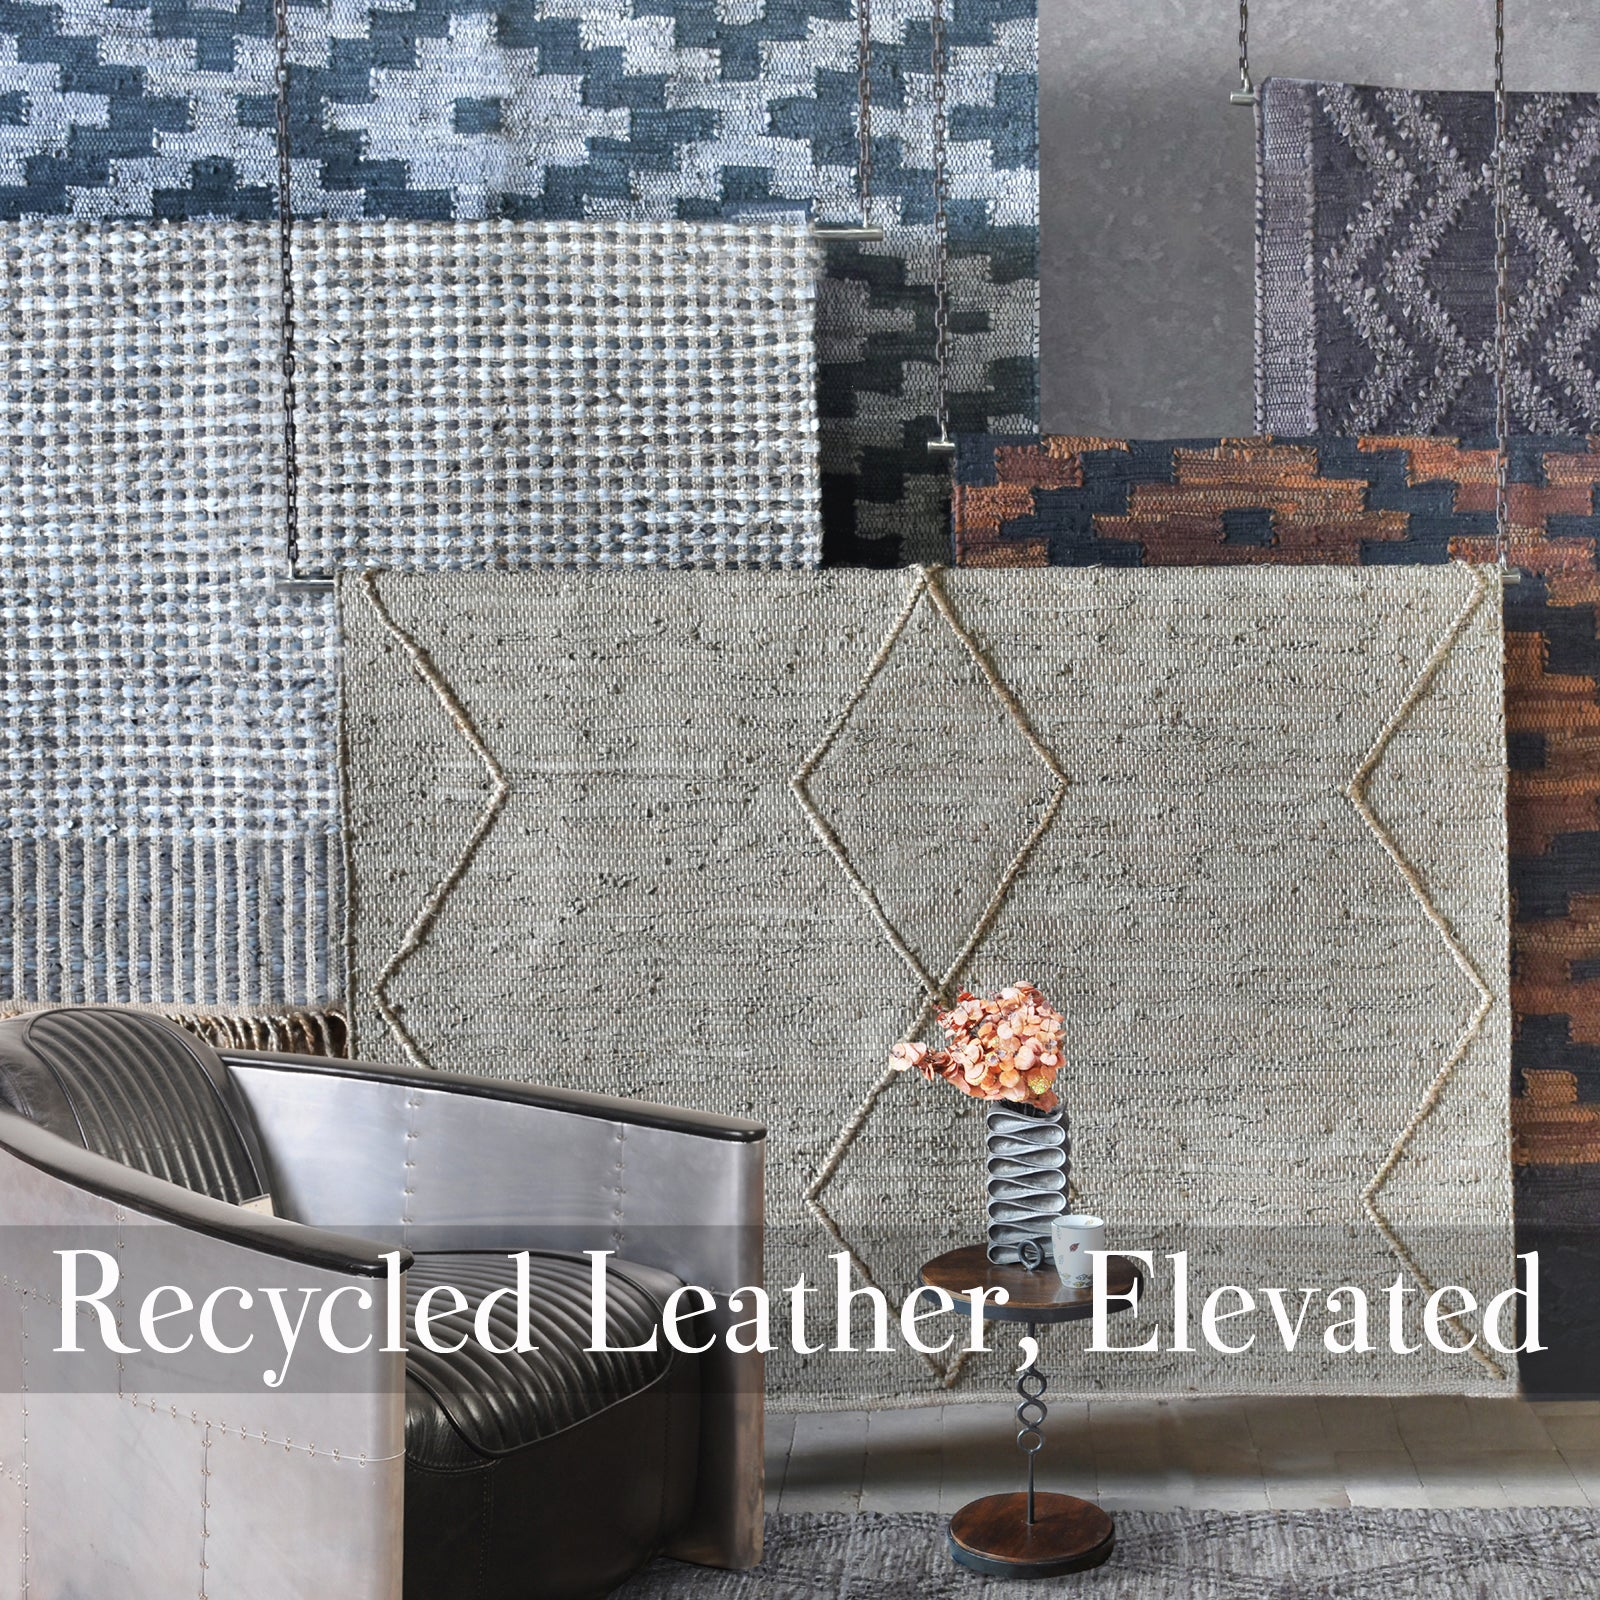 Recycled Leather, Elevated Rugs India